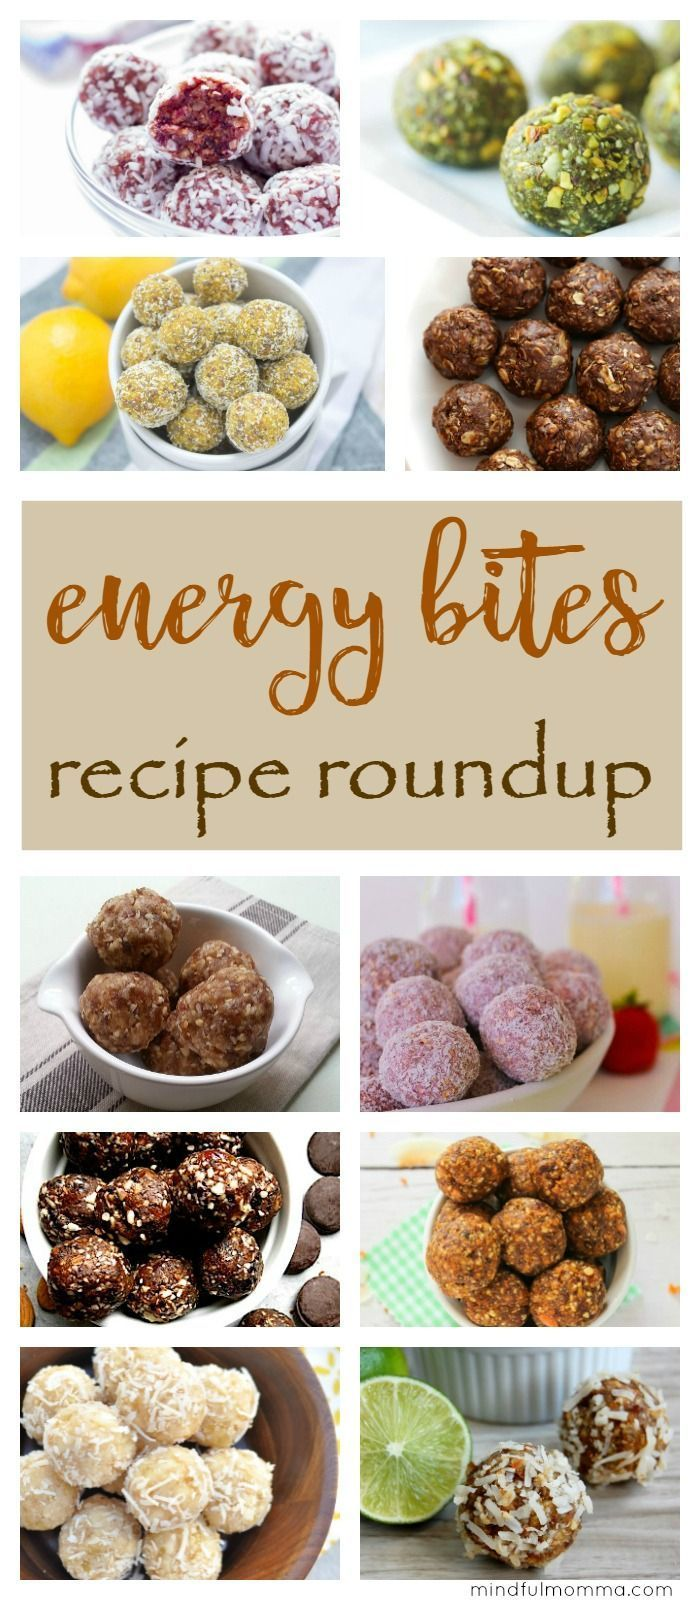 A Roundup Of Homemade Energy Bites Recipes In Every Flavor Combination You Can Think